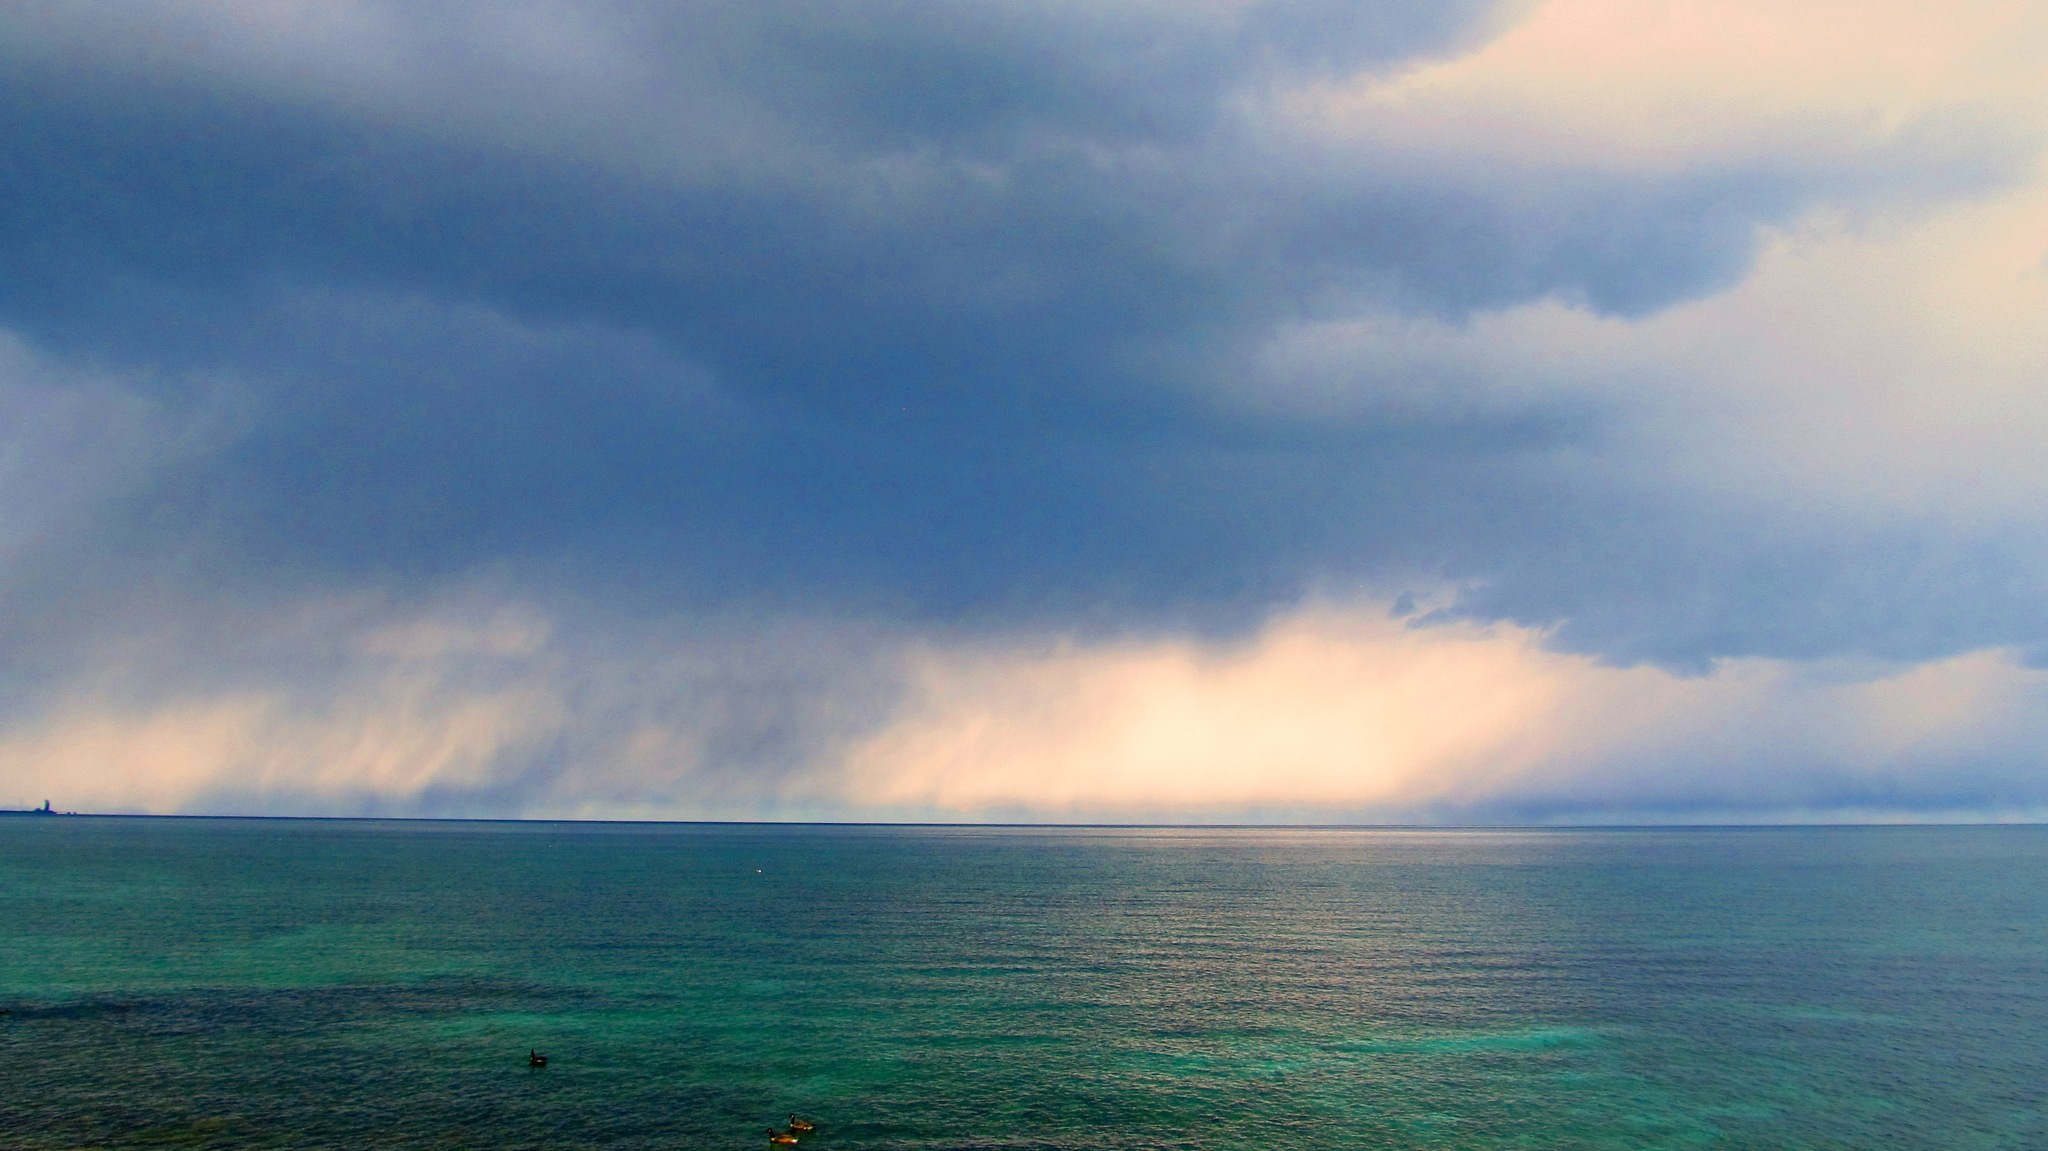 Storm Over the Water  by simonp